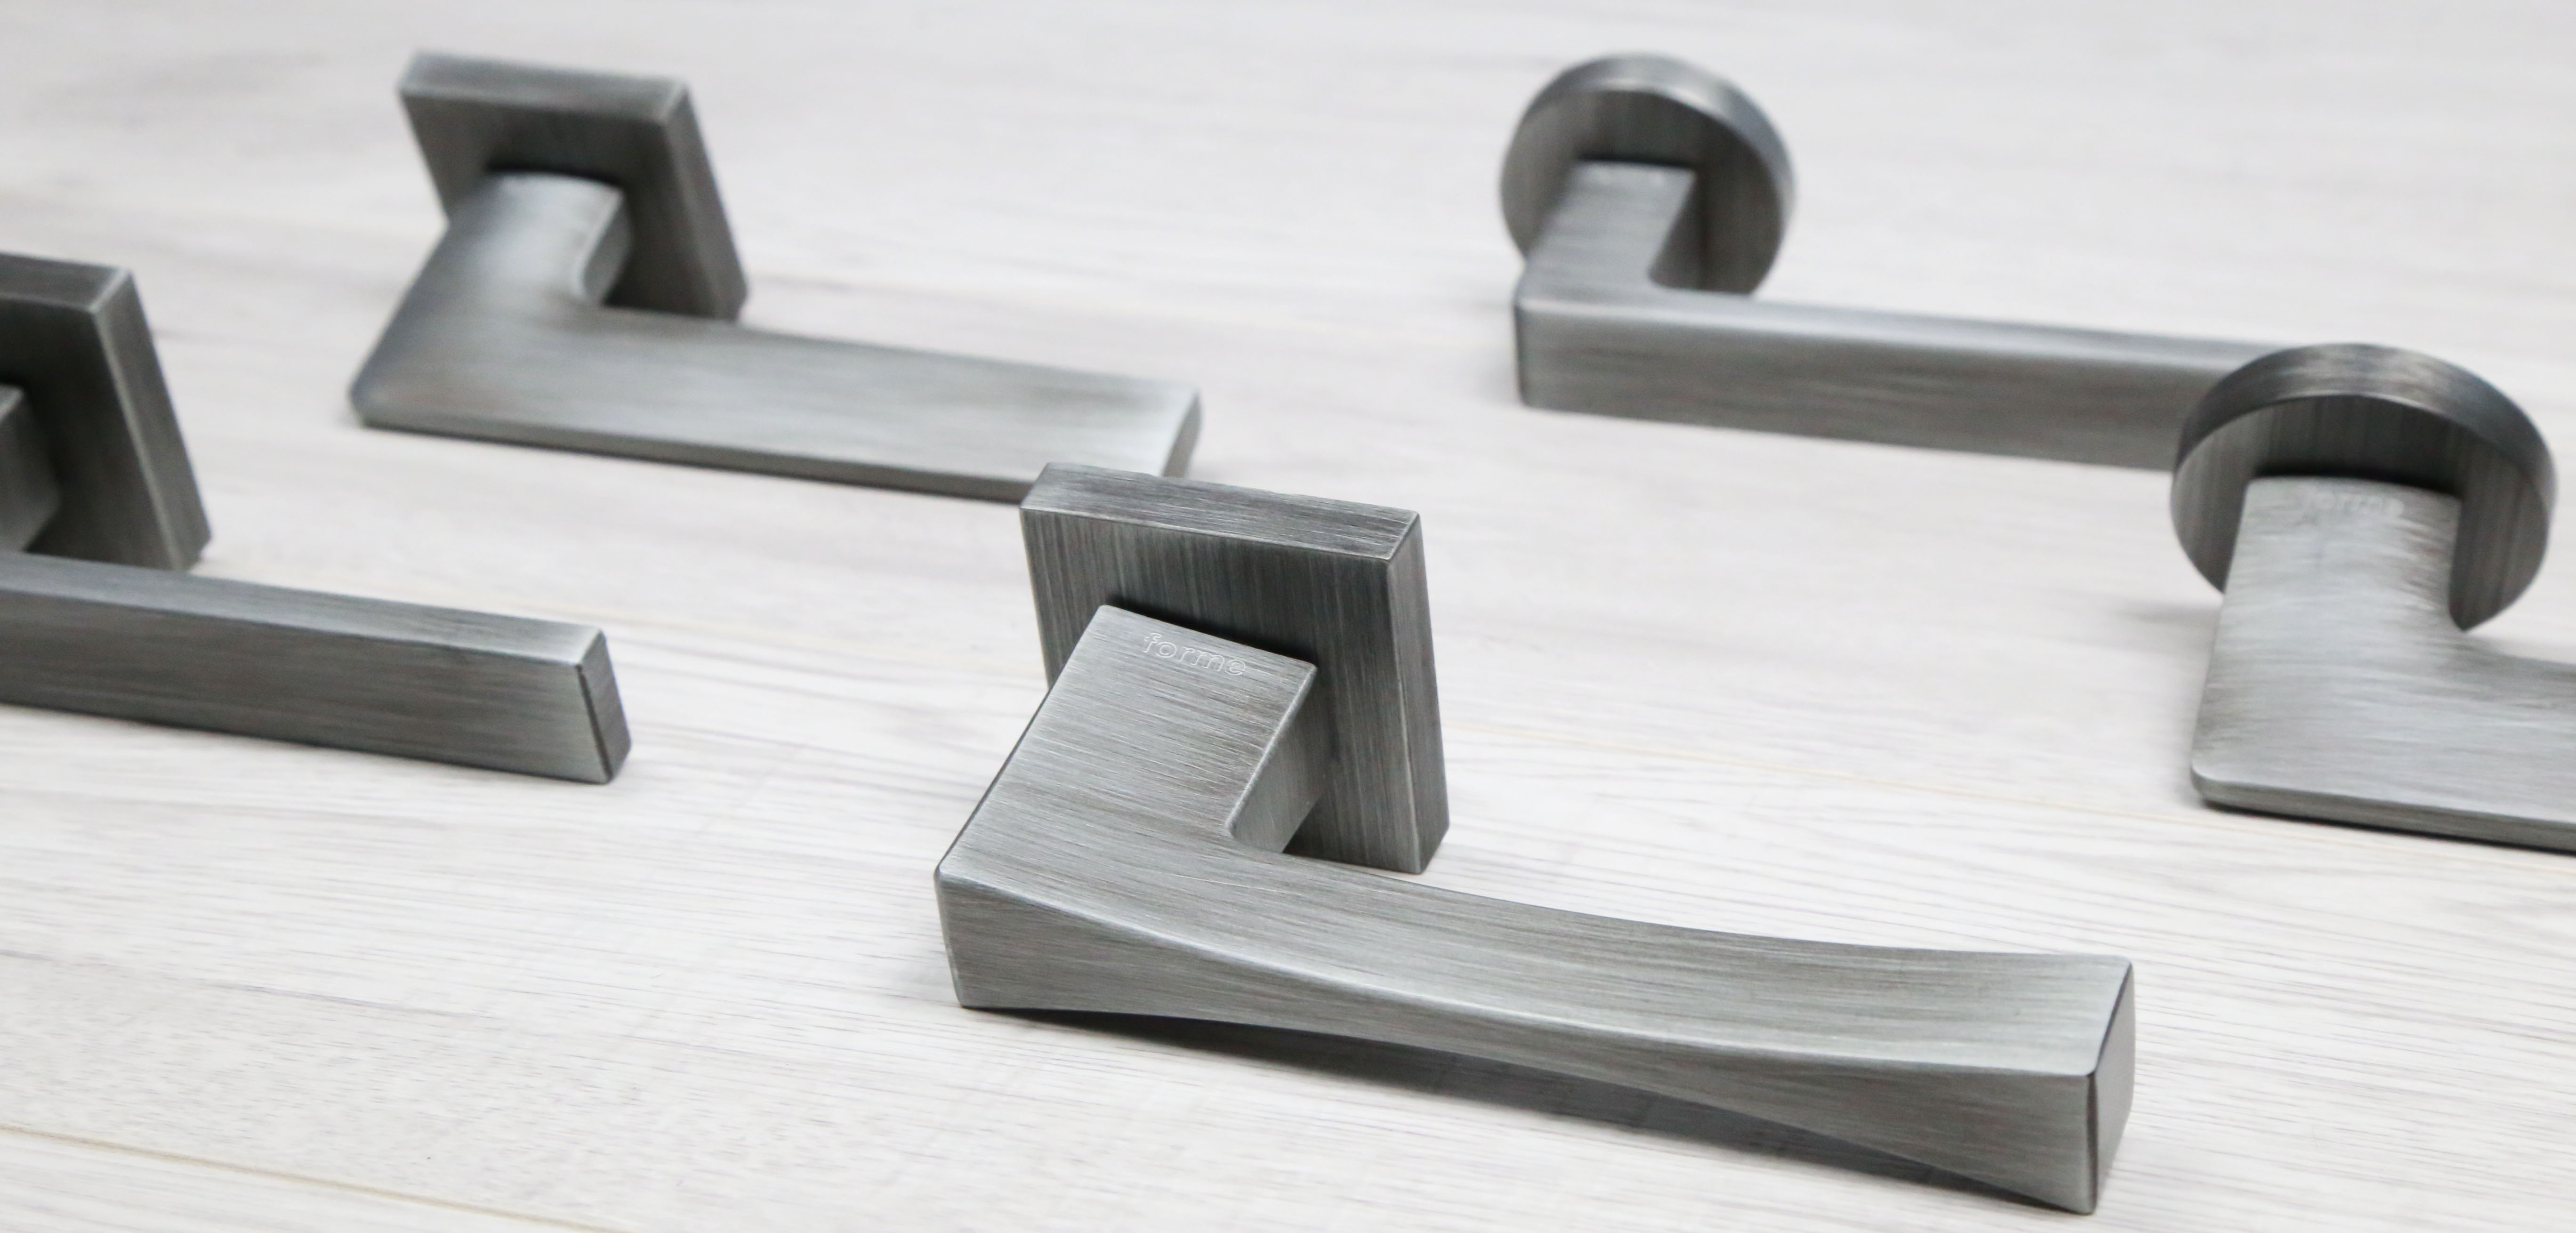 G Johns & Sons | Architectural Ironmongery | Specialist